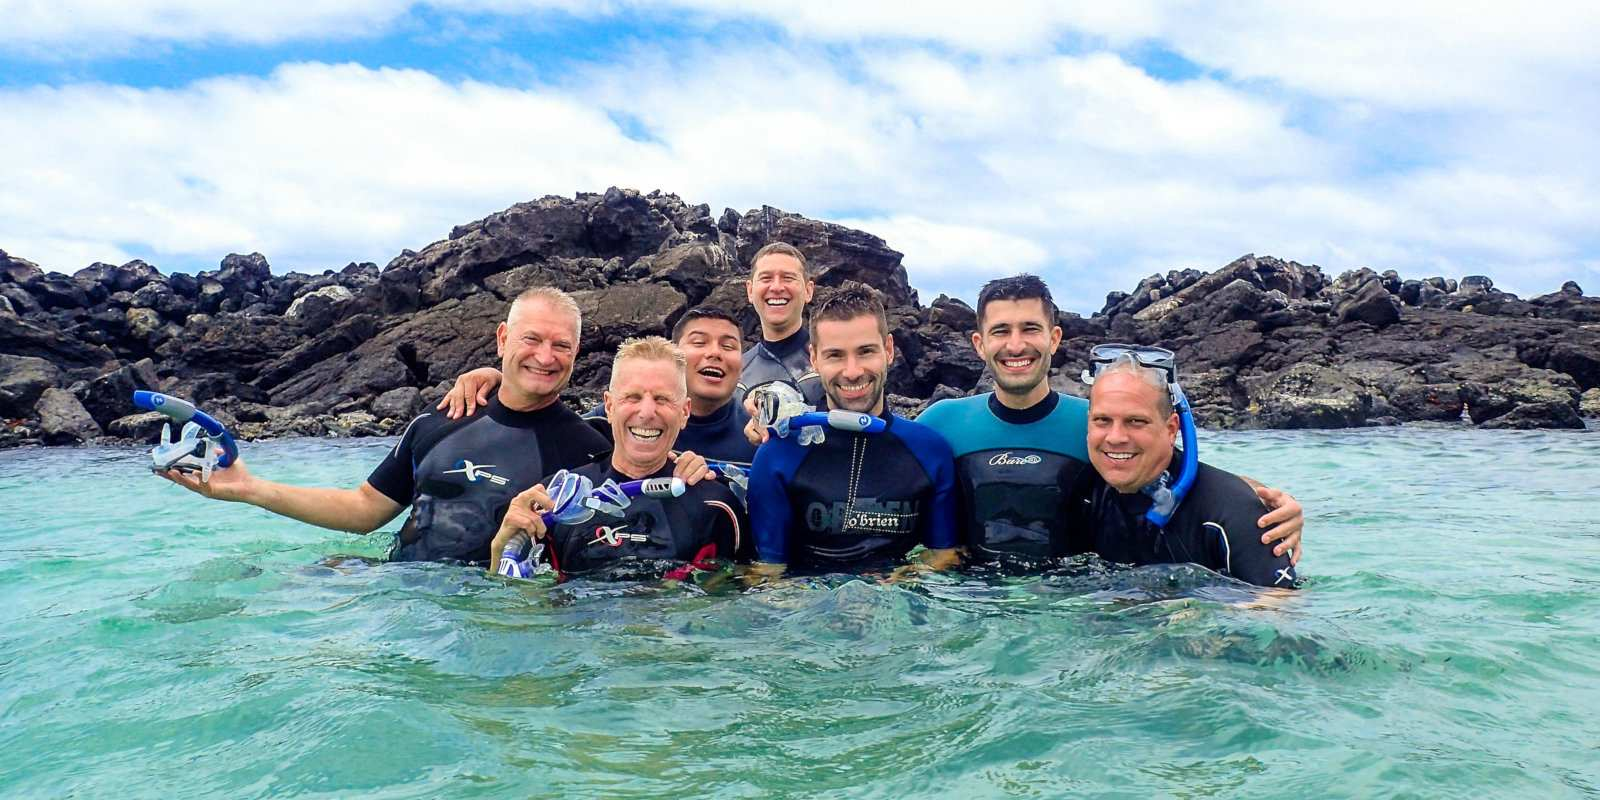 Snorkelling with our new gay friends on an Ecuador Nomadic gay cruise of the Galapagos